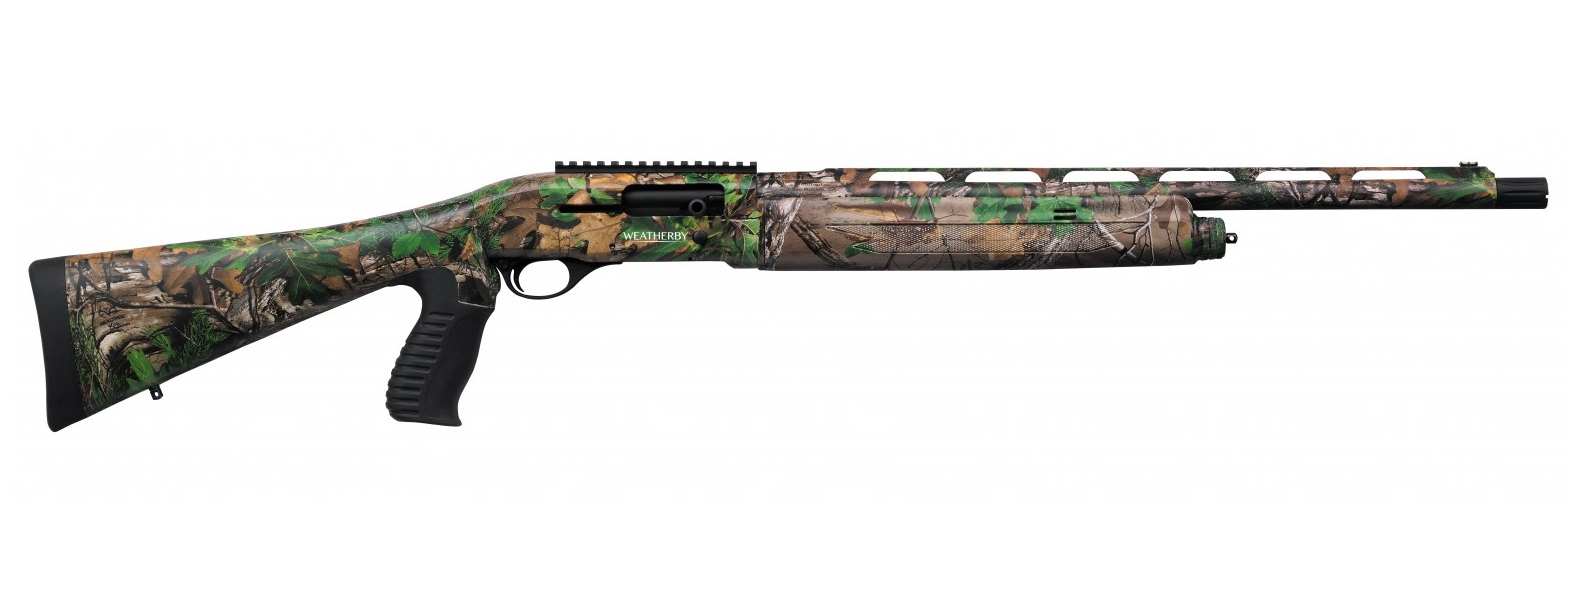 Weatherby SA-459 Turkey 20 Gauge